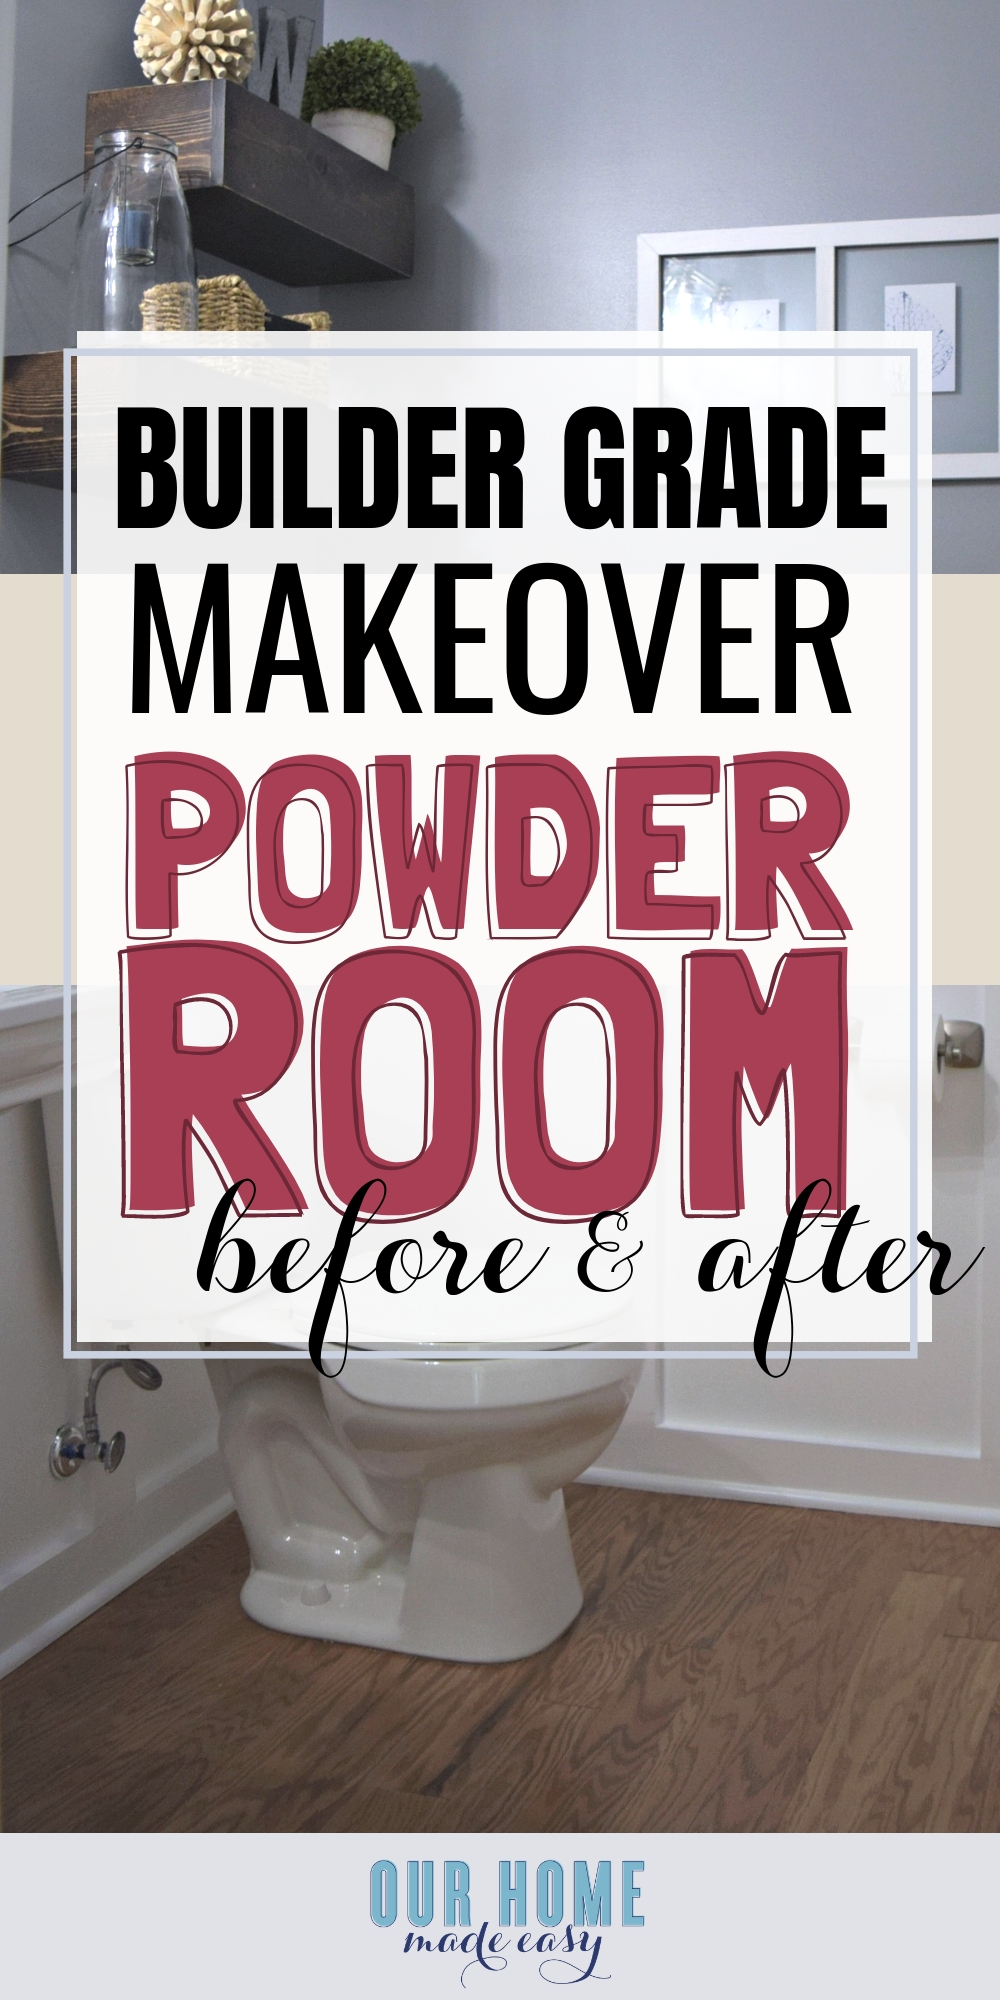 Here is an easy DIY budget powder room makeover! We used easy projects to go from builder grade to modern. Click to see how we did it! #bathroom #homedecor #oneroomchallenge #orc #ourhomemadeeasy